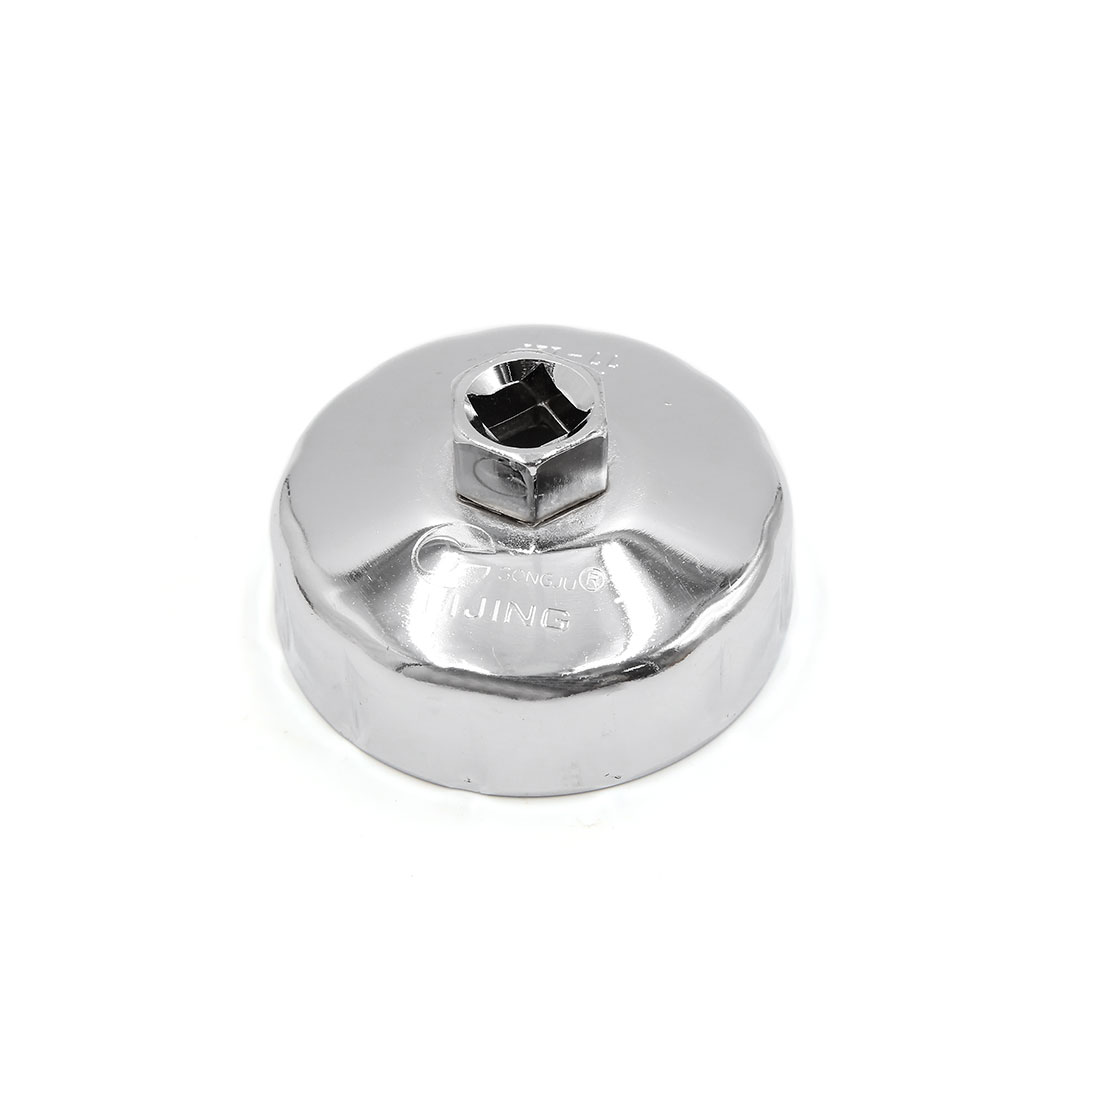 Silver Tone Steel 77mm Inner Dia 12 Flutes Car Oil Filter Cap Wrench Socket Remover